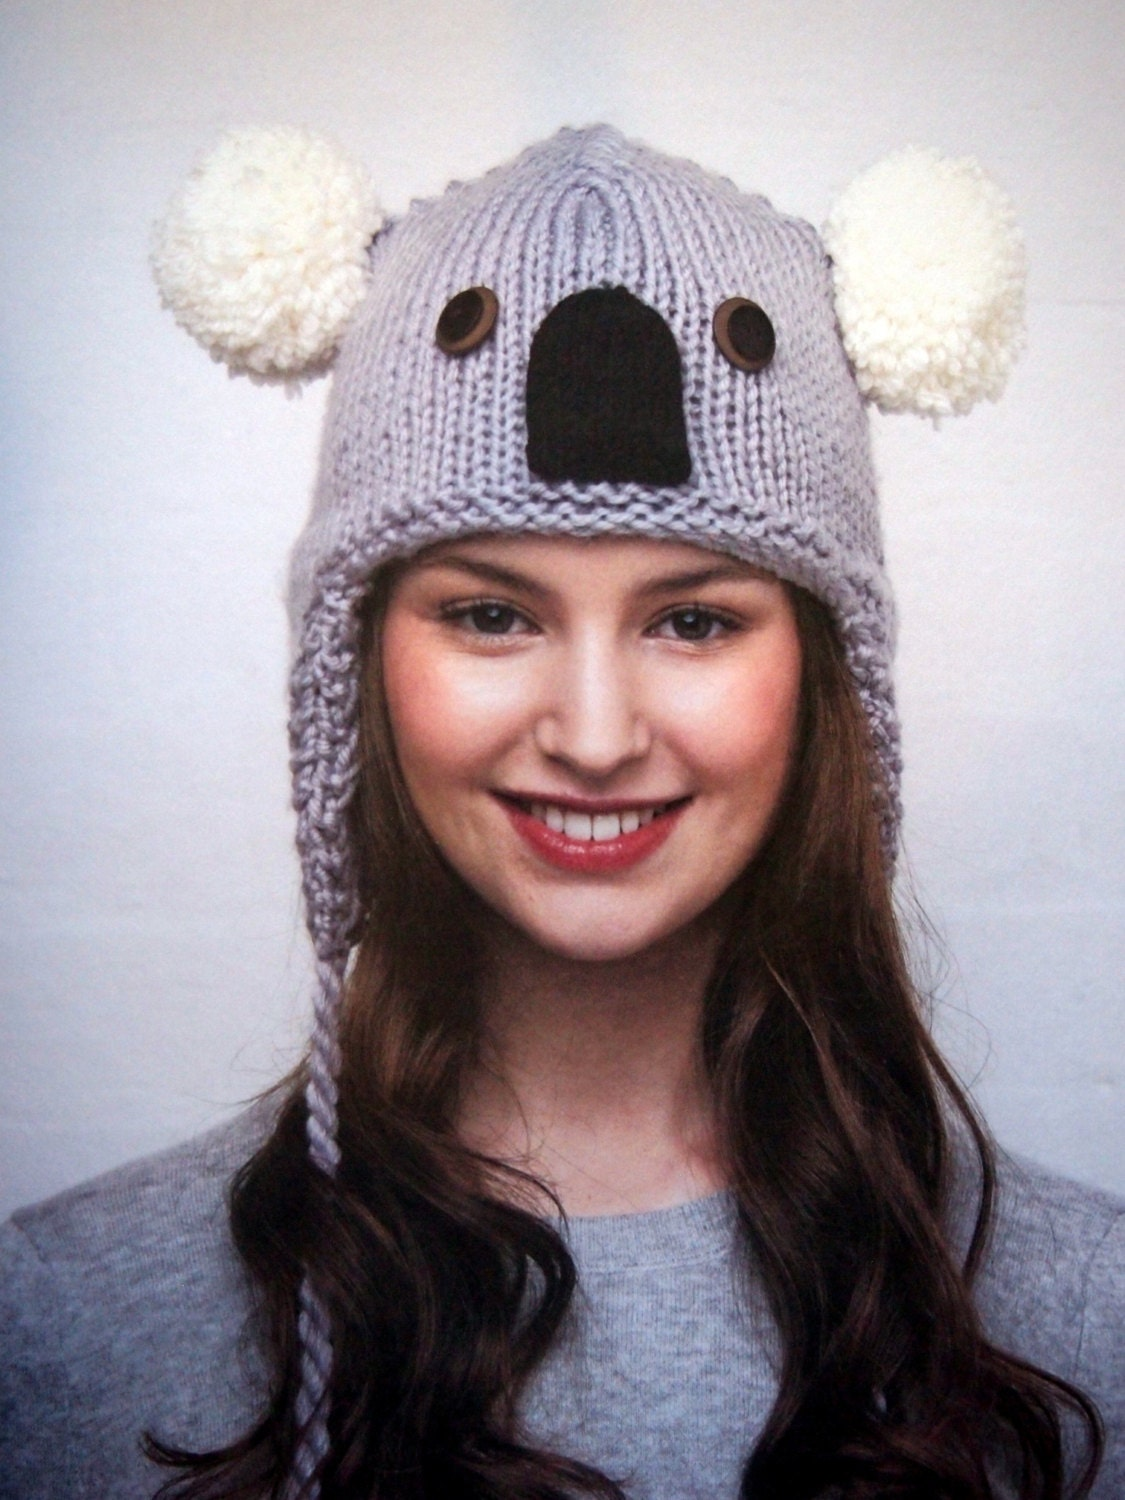 Knitting Patterns Hats Animals : Animal Hats 15 Patterns To Knit And Show Off By Vanessa